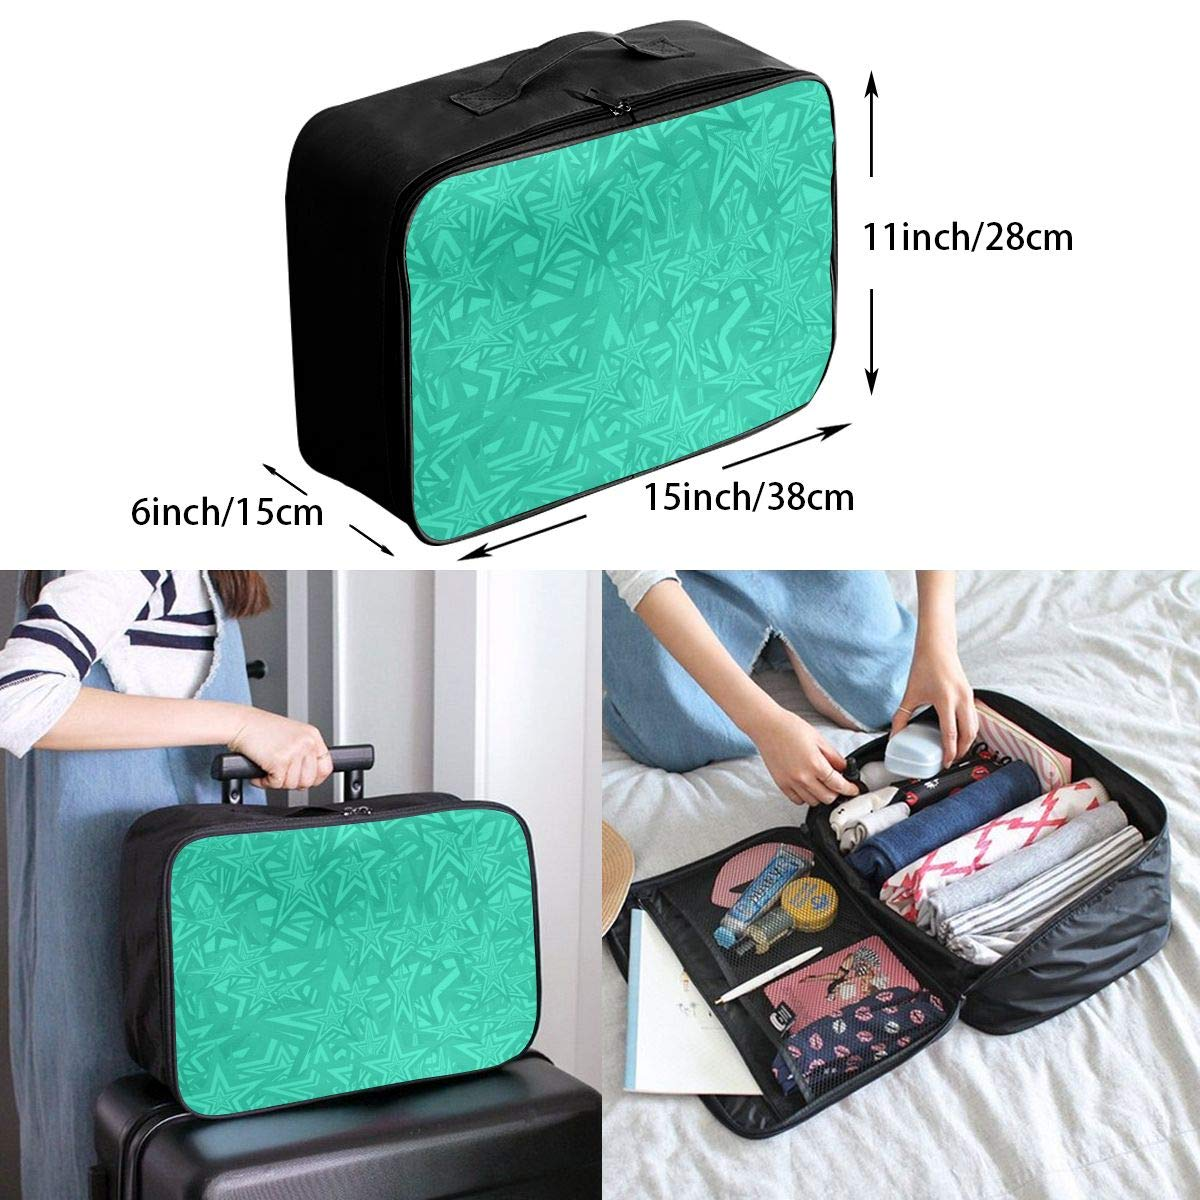 Multi Color Flower Art Texture Line Travel Lightweight Waterproof Foldable Storage Carry Luggage Large Capacity Portable Luggage Bag Duffel Bag